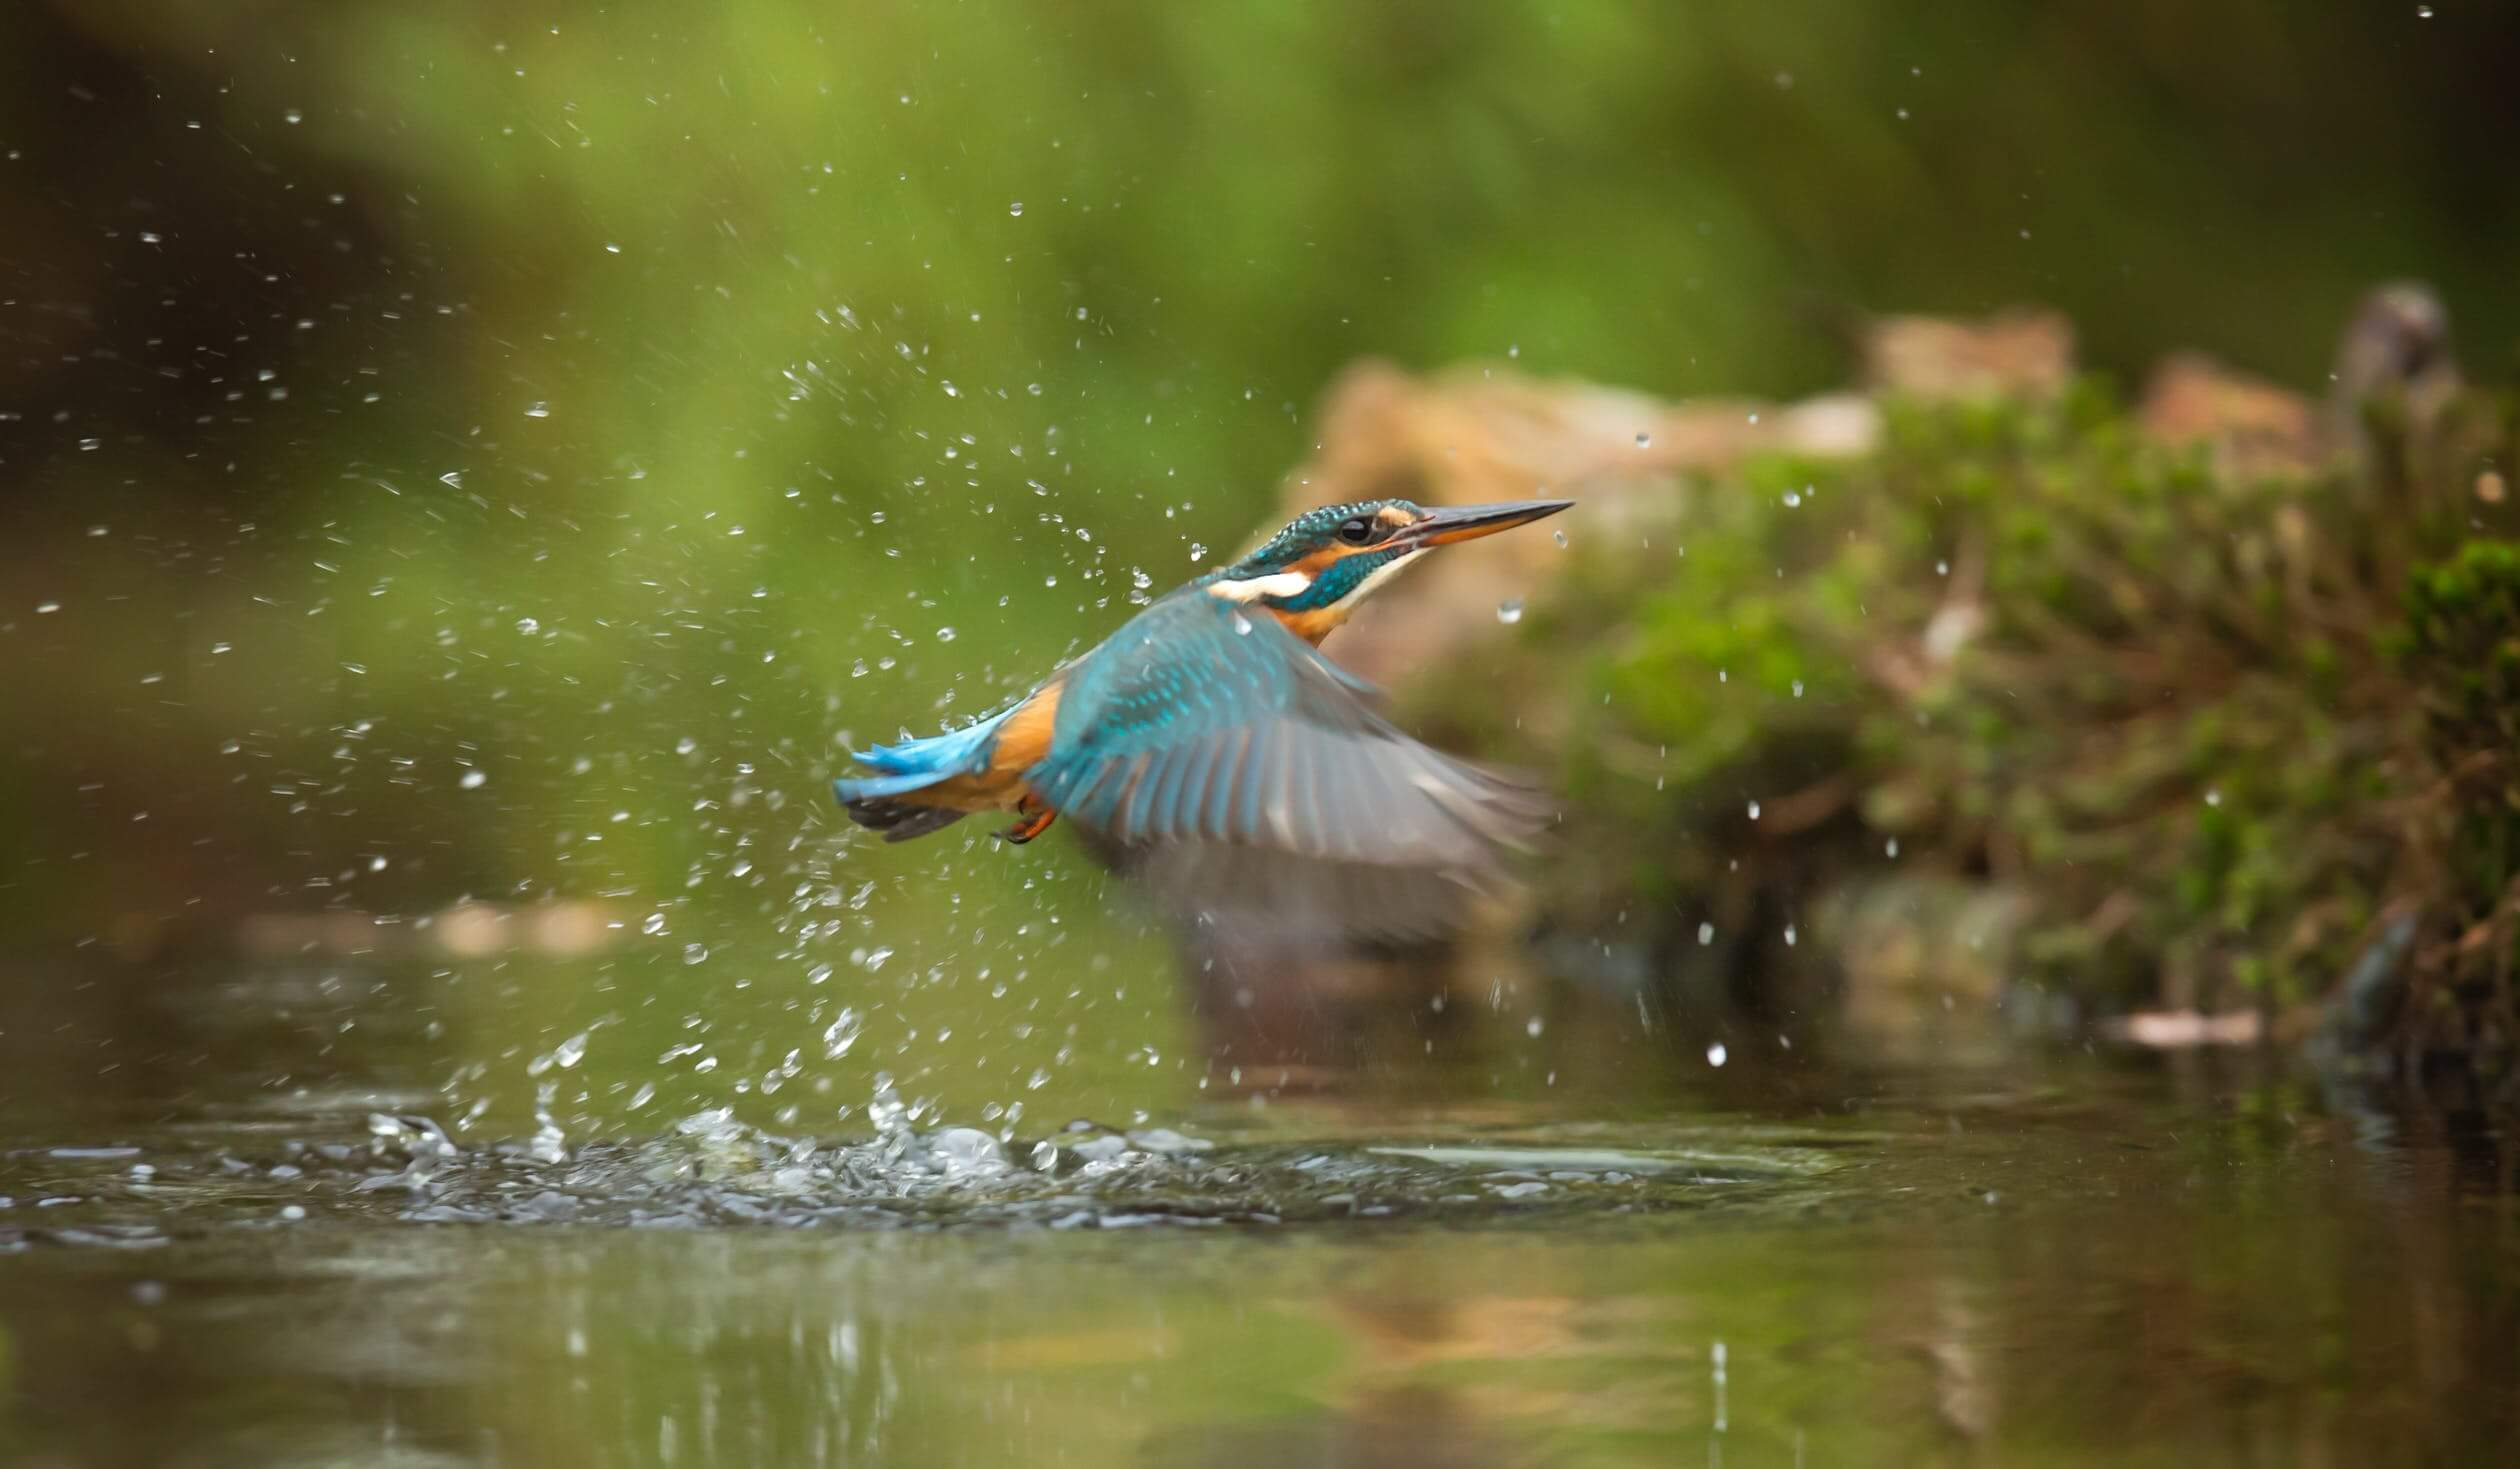 A common kingfisher flying above river.